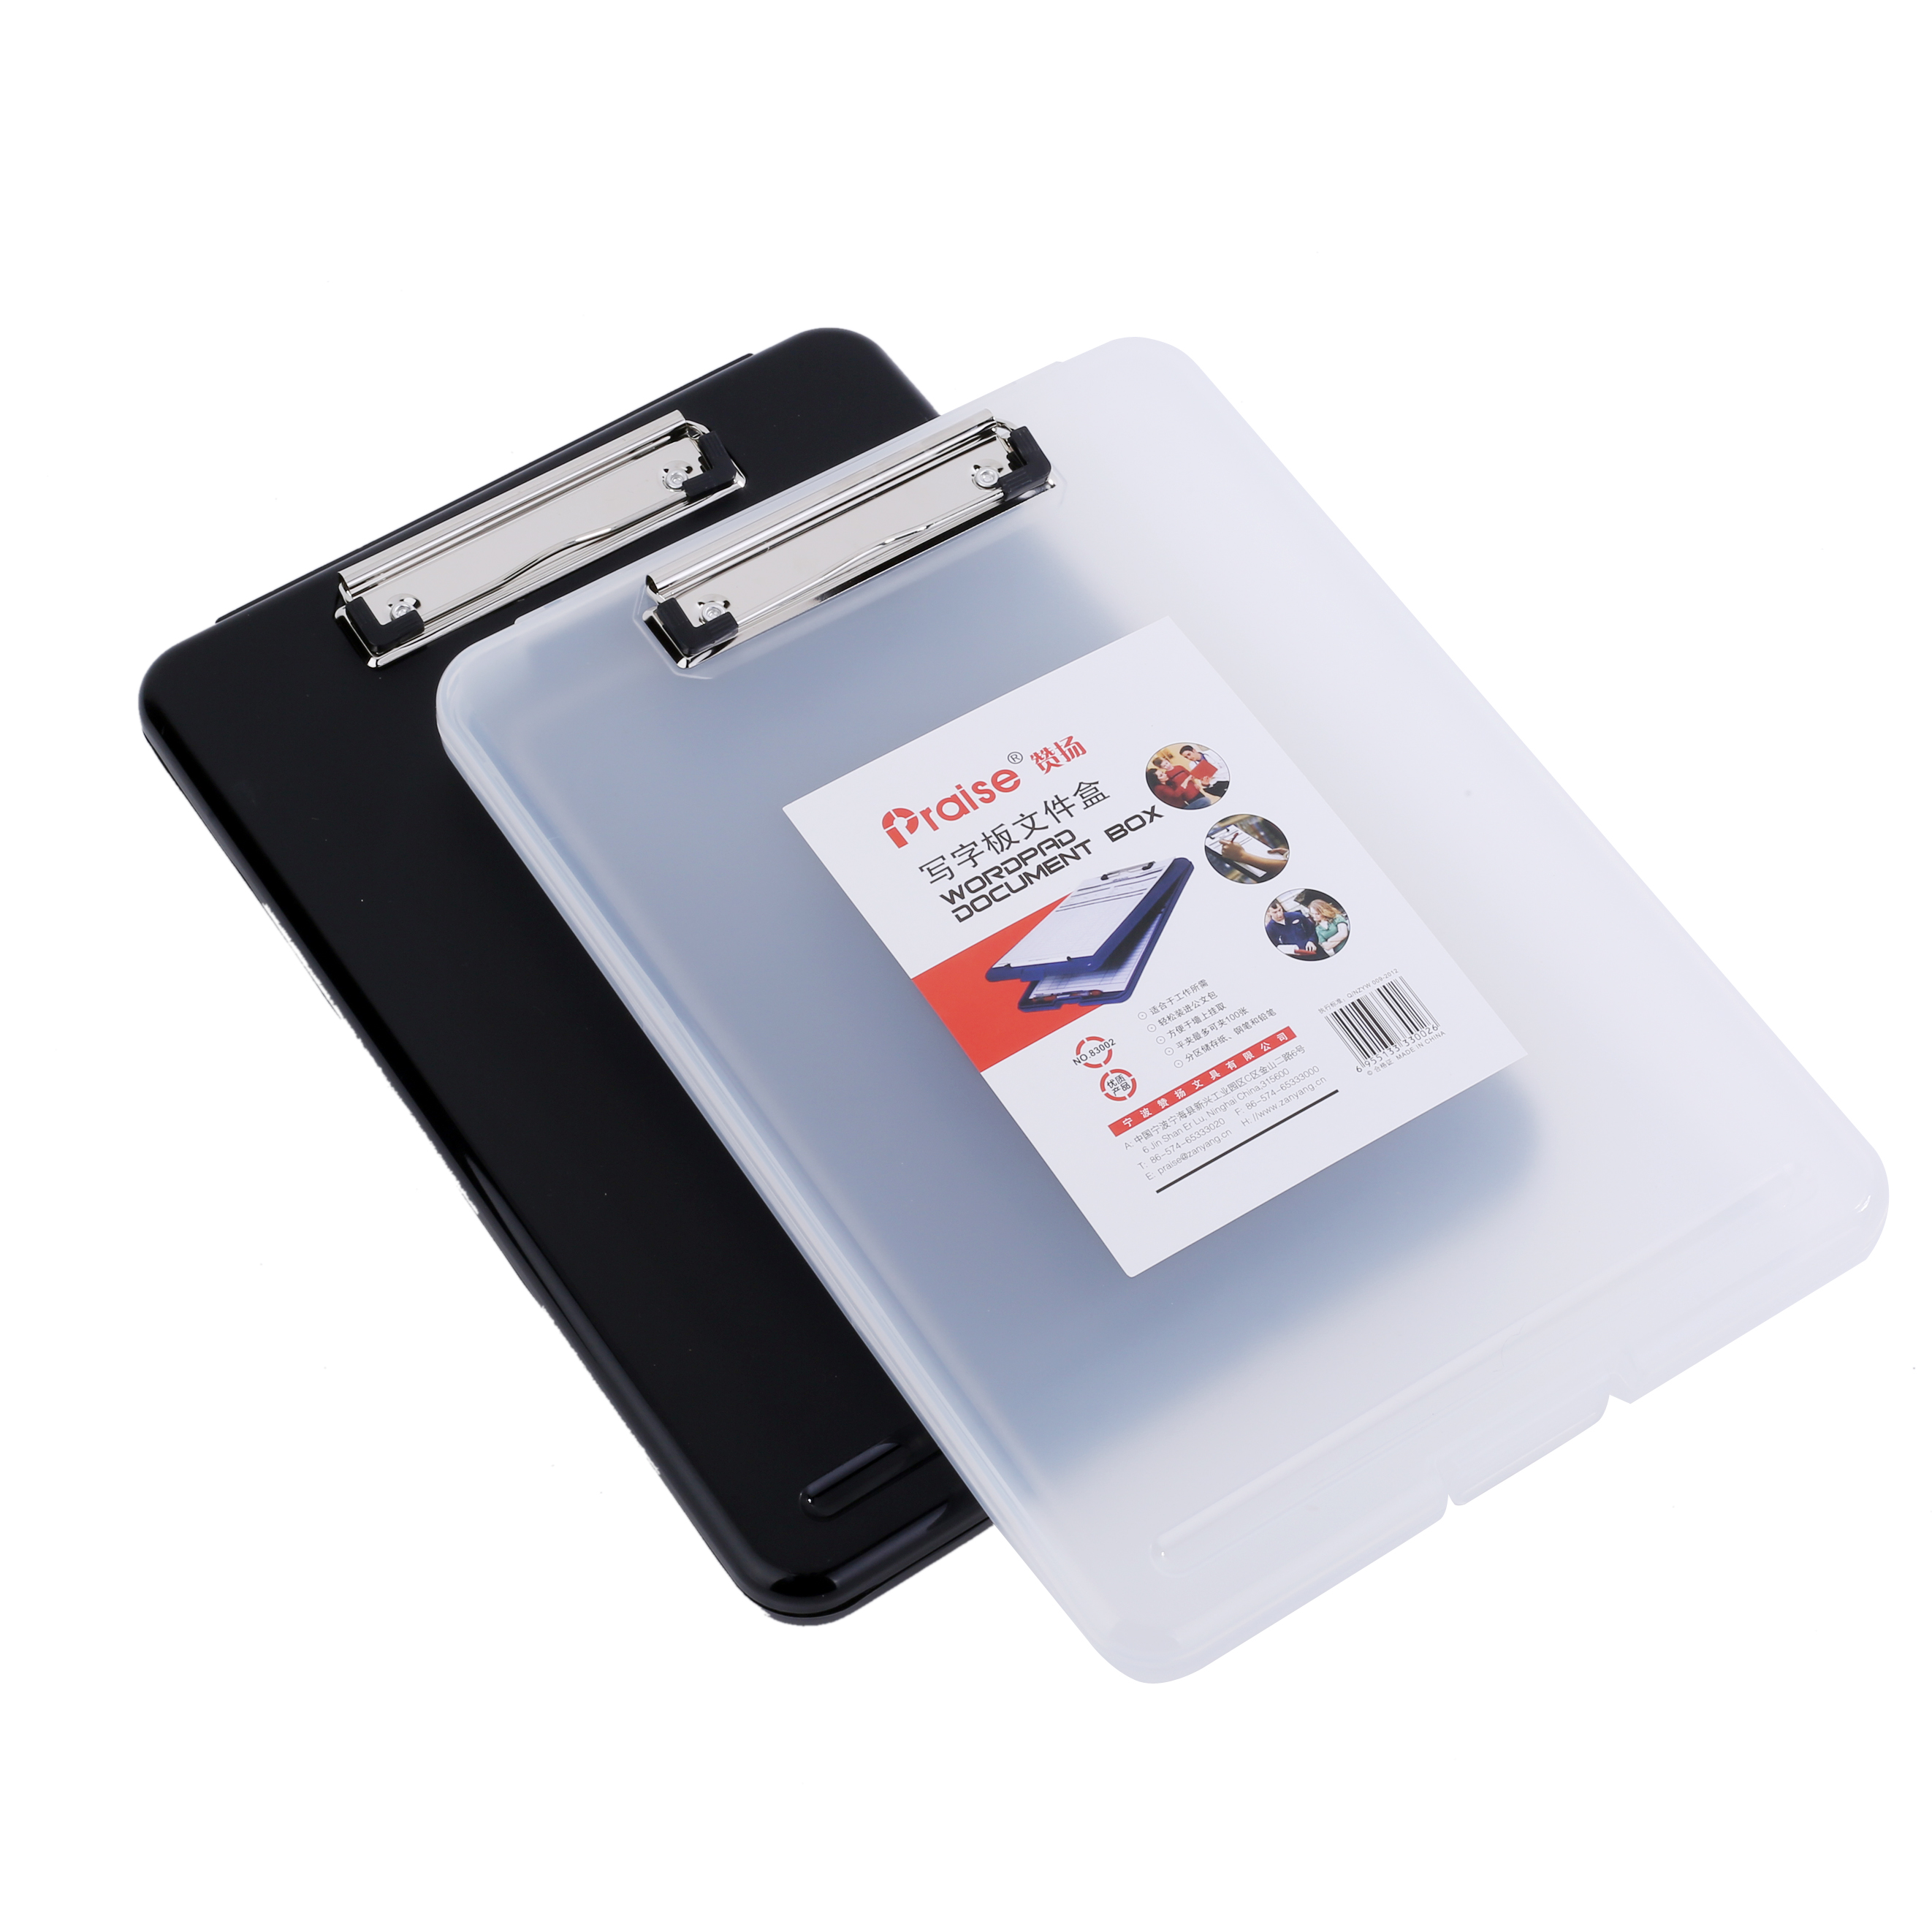 New Style Multifunctional File Box Black And Transparent Plastic Clipboard A4 Document Filling Stationery Organizer Stationery